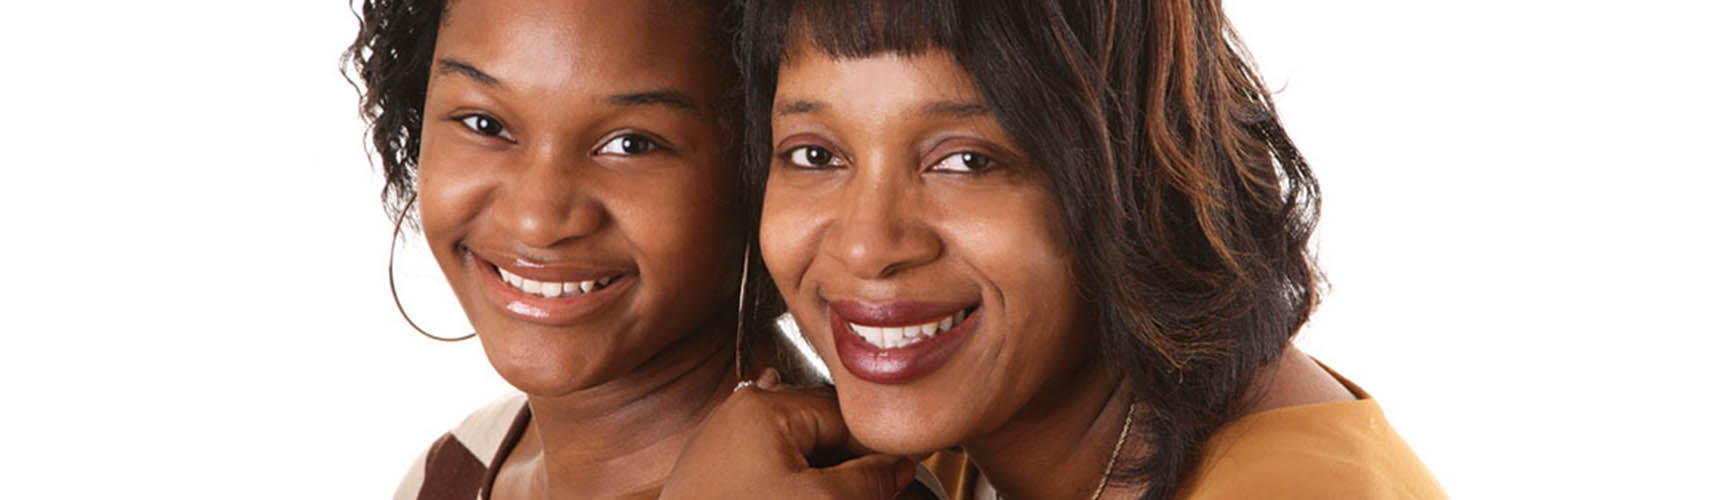 banner-mom-daughter-1709x500.jpg